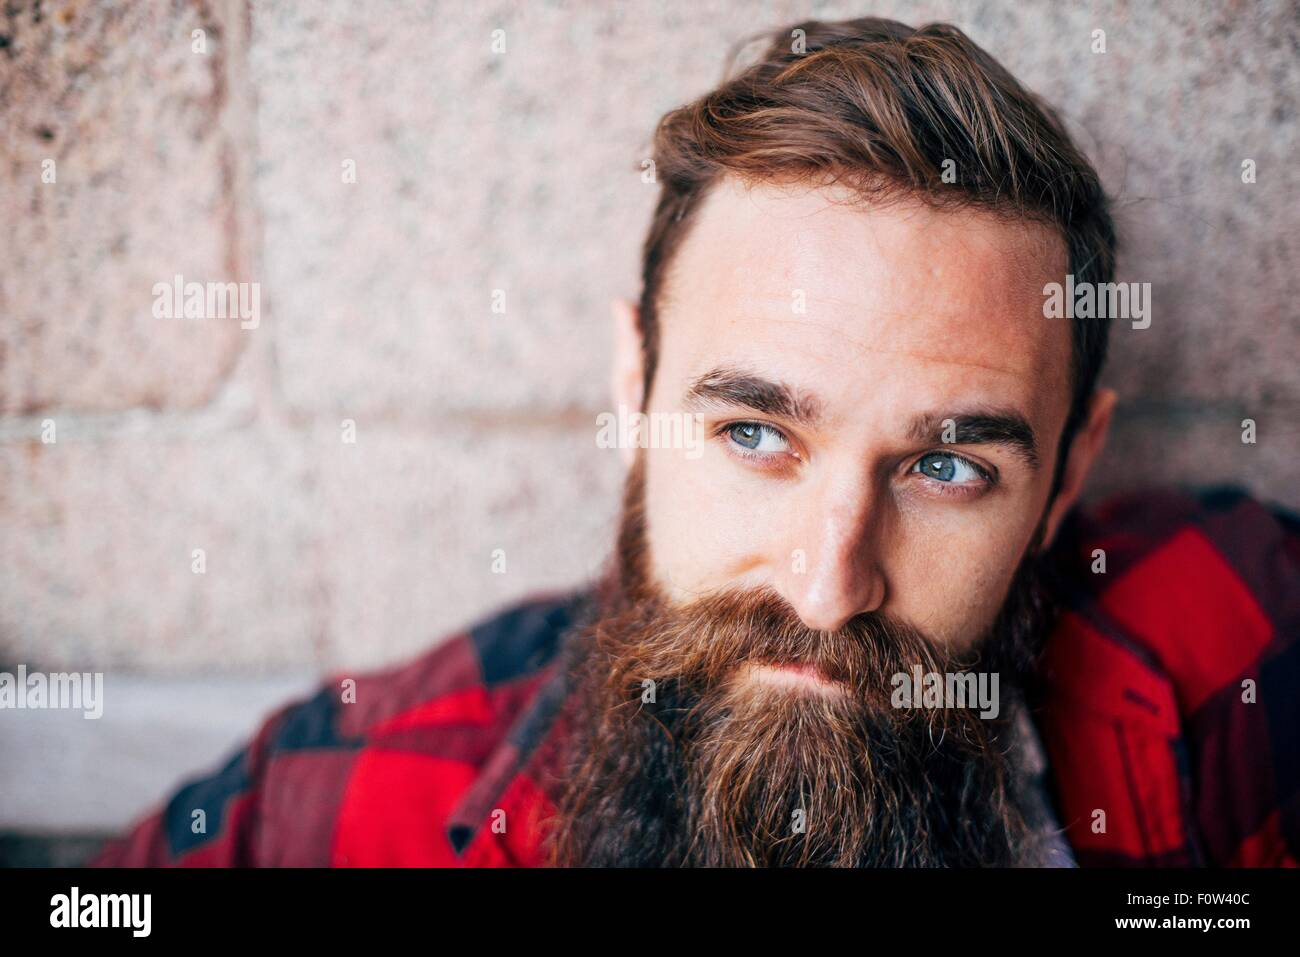 Portrait d'homme à barbe à la voiture Photo Stock